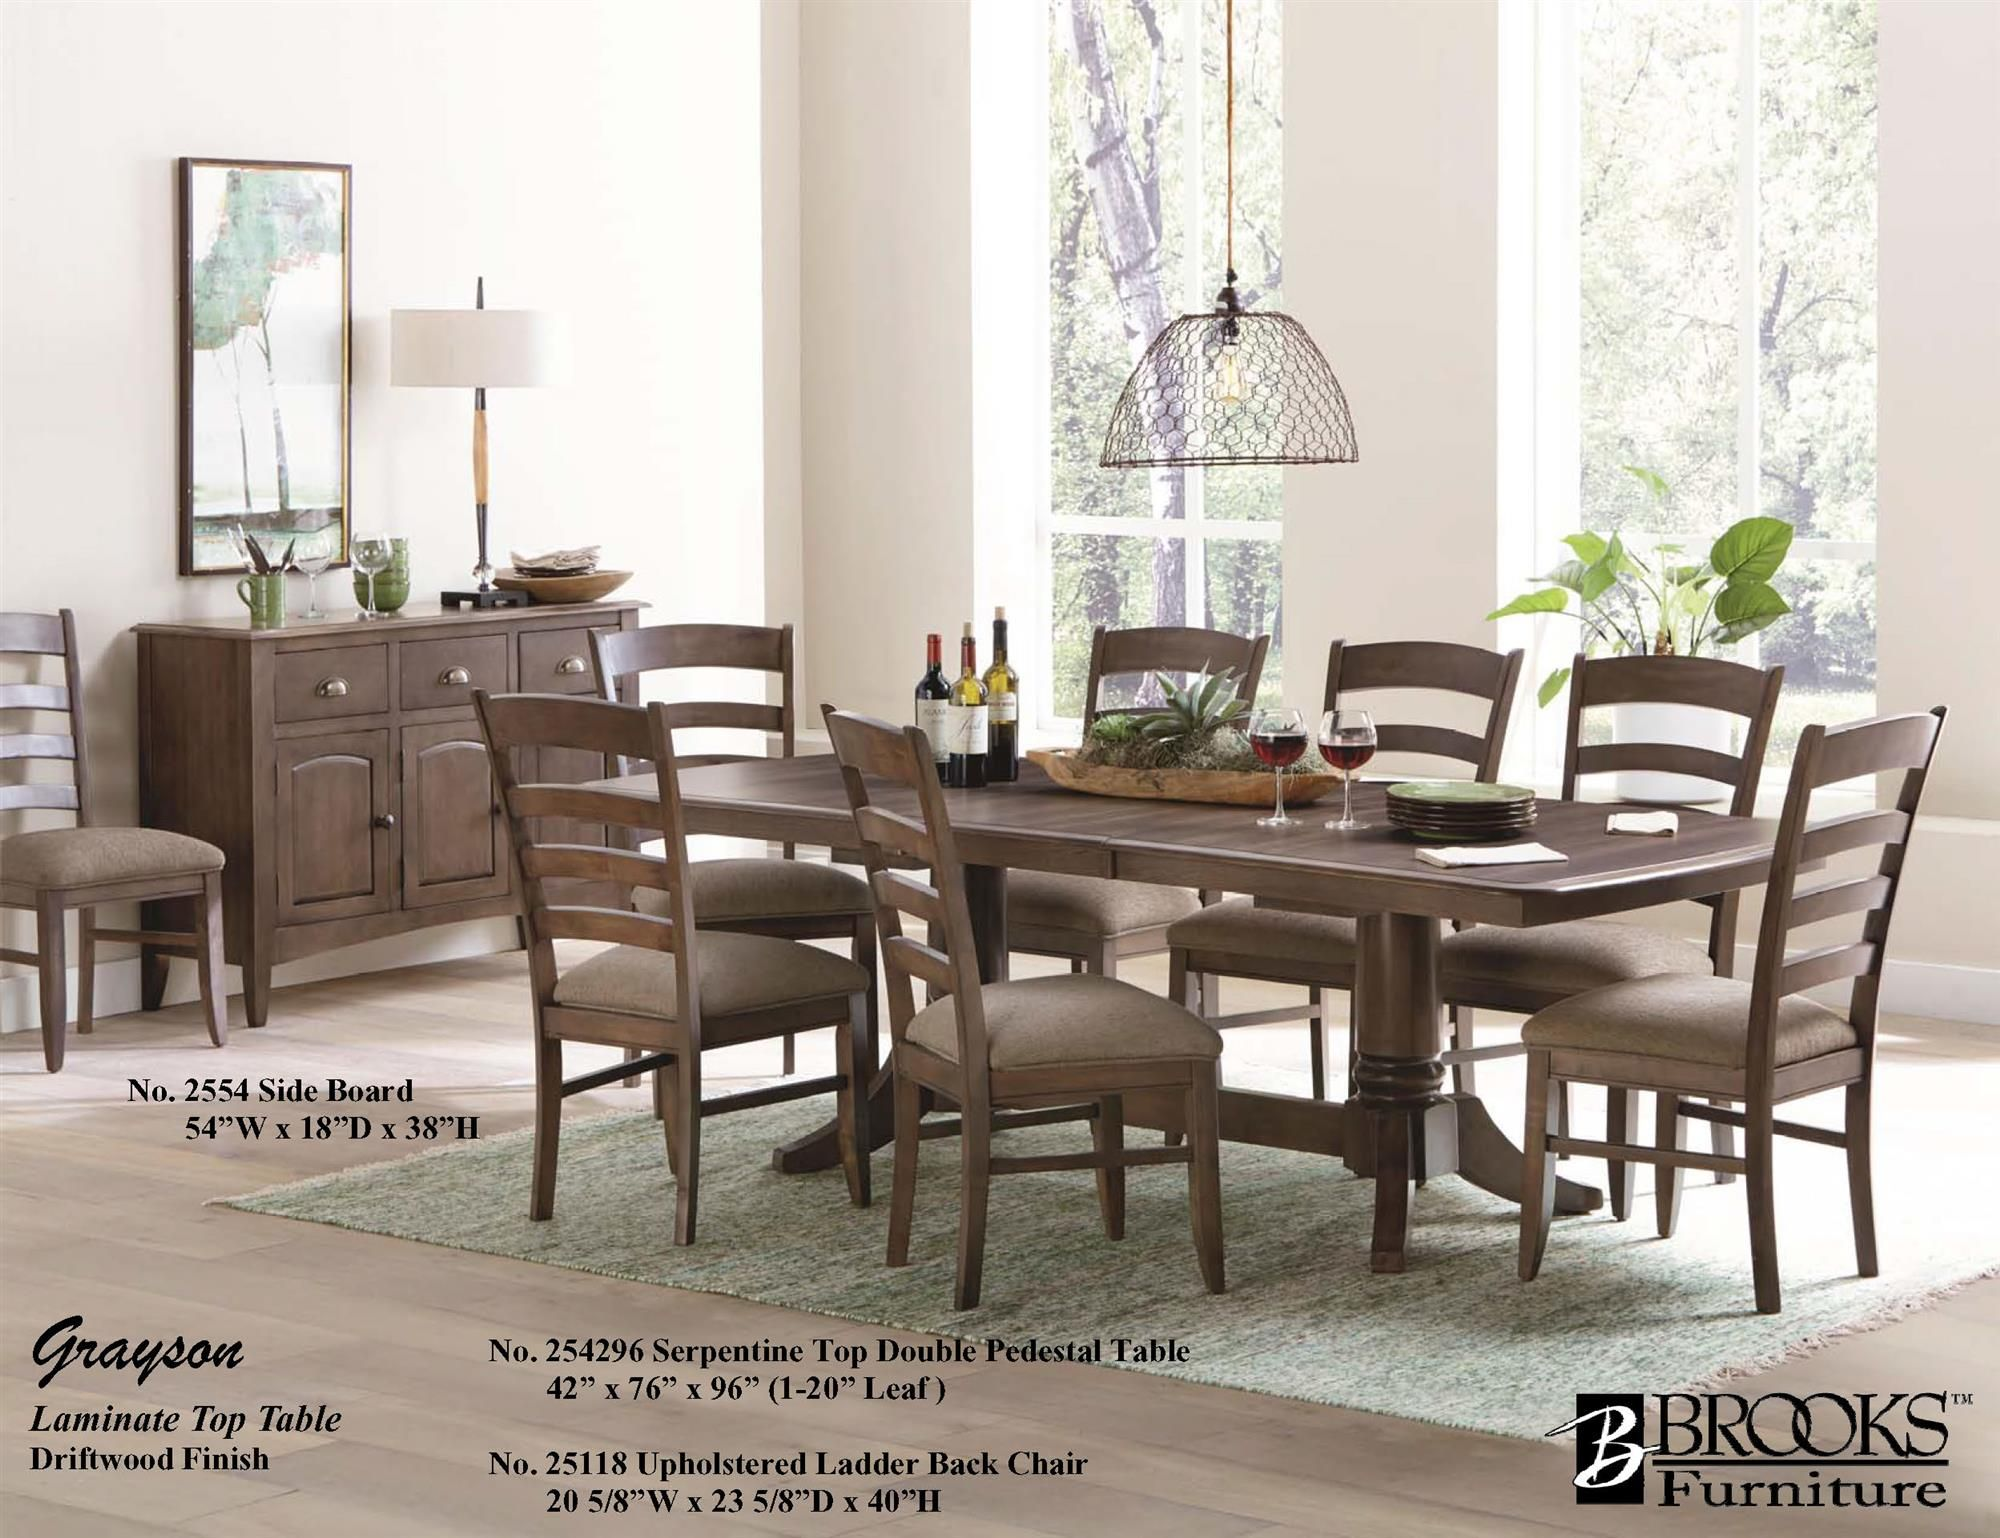 Outdoor furniture sets, Home decor, Outdoor furniture